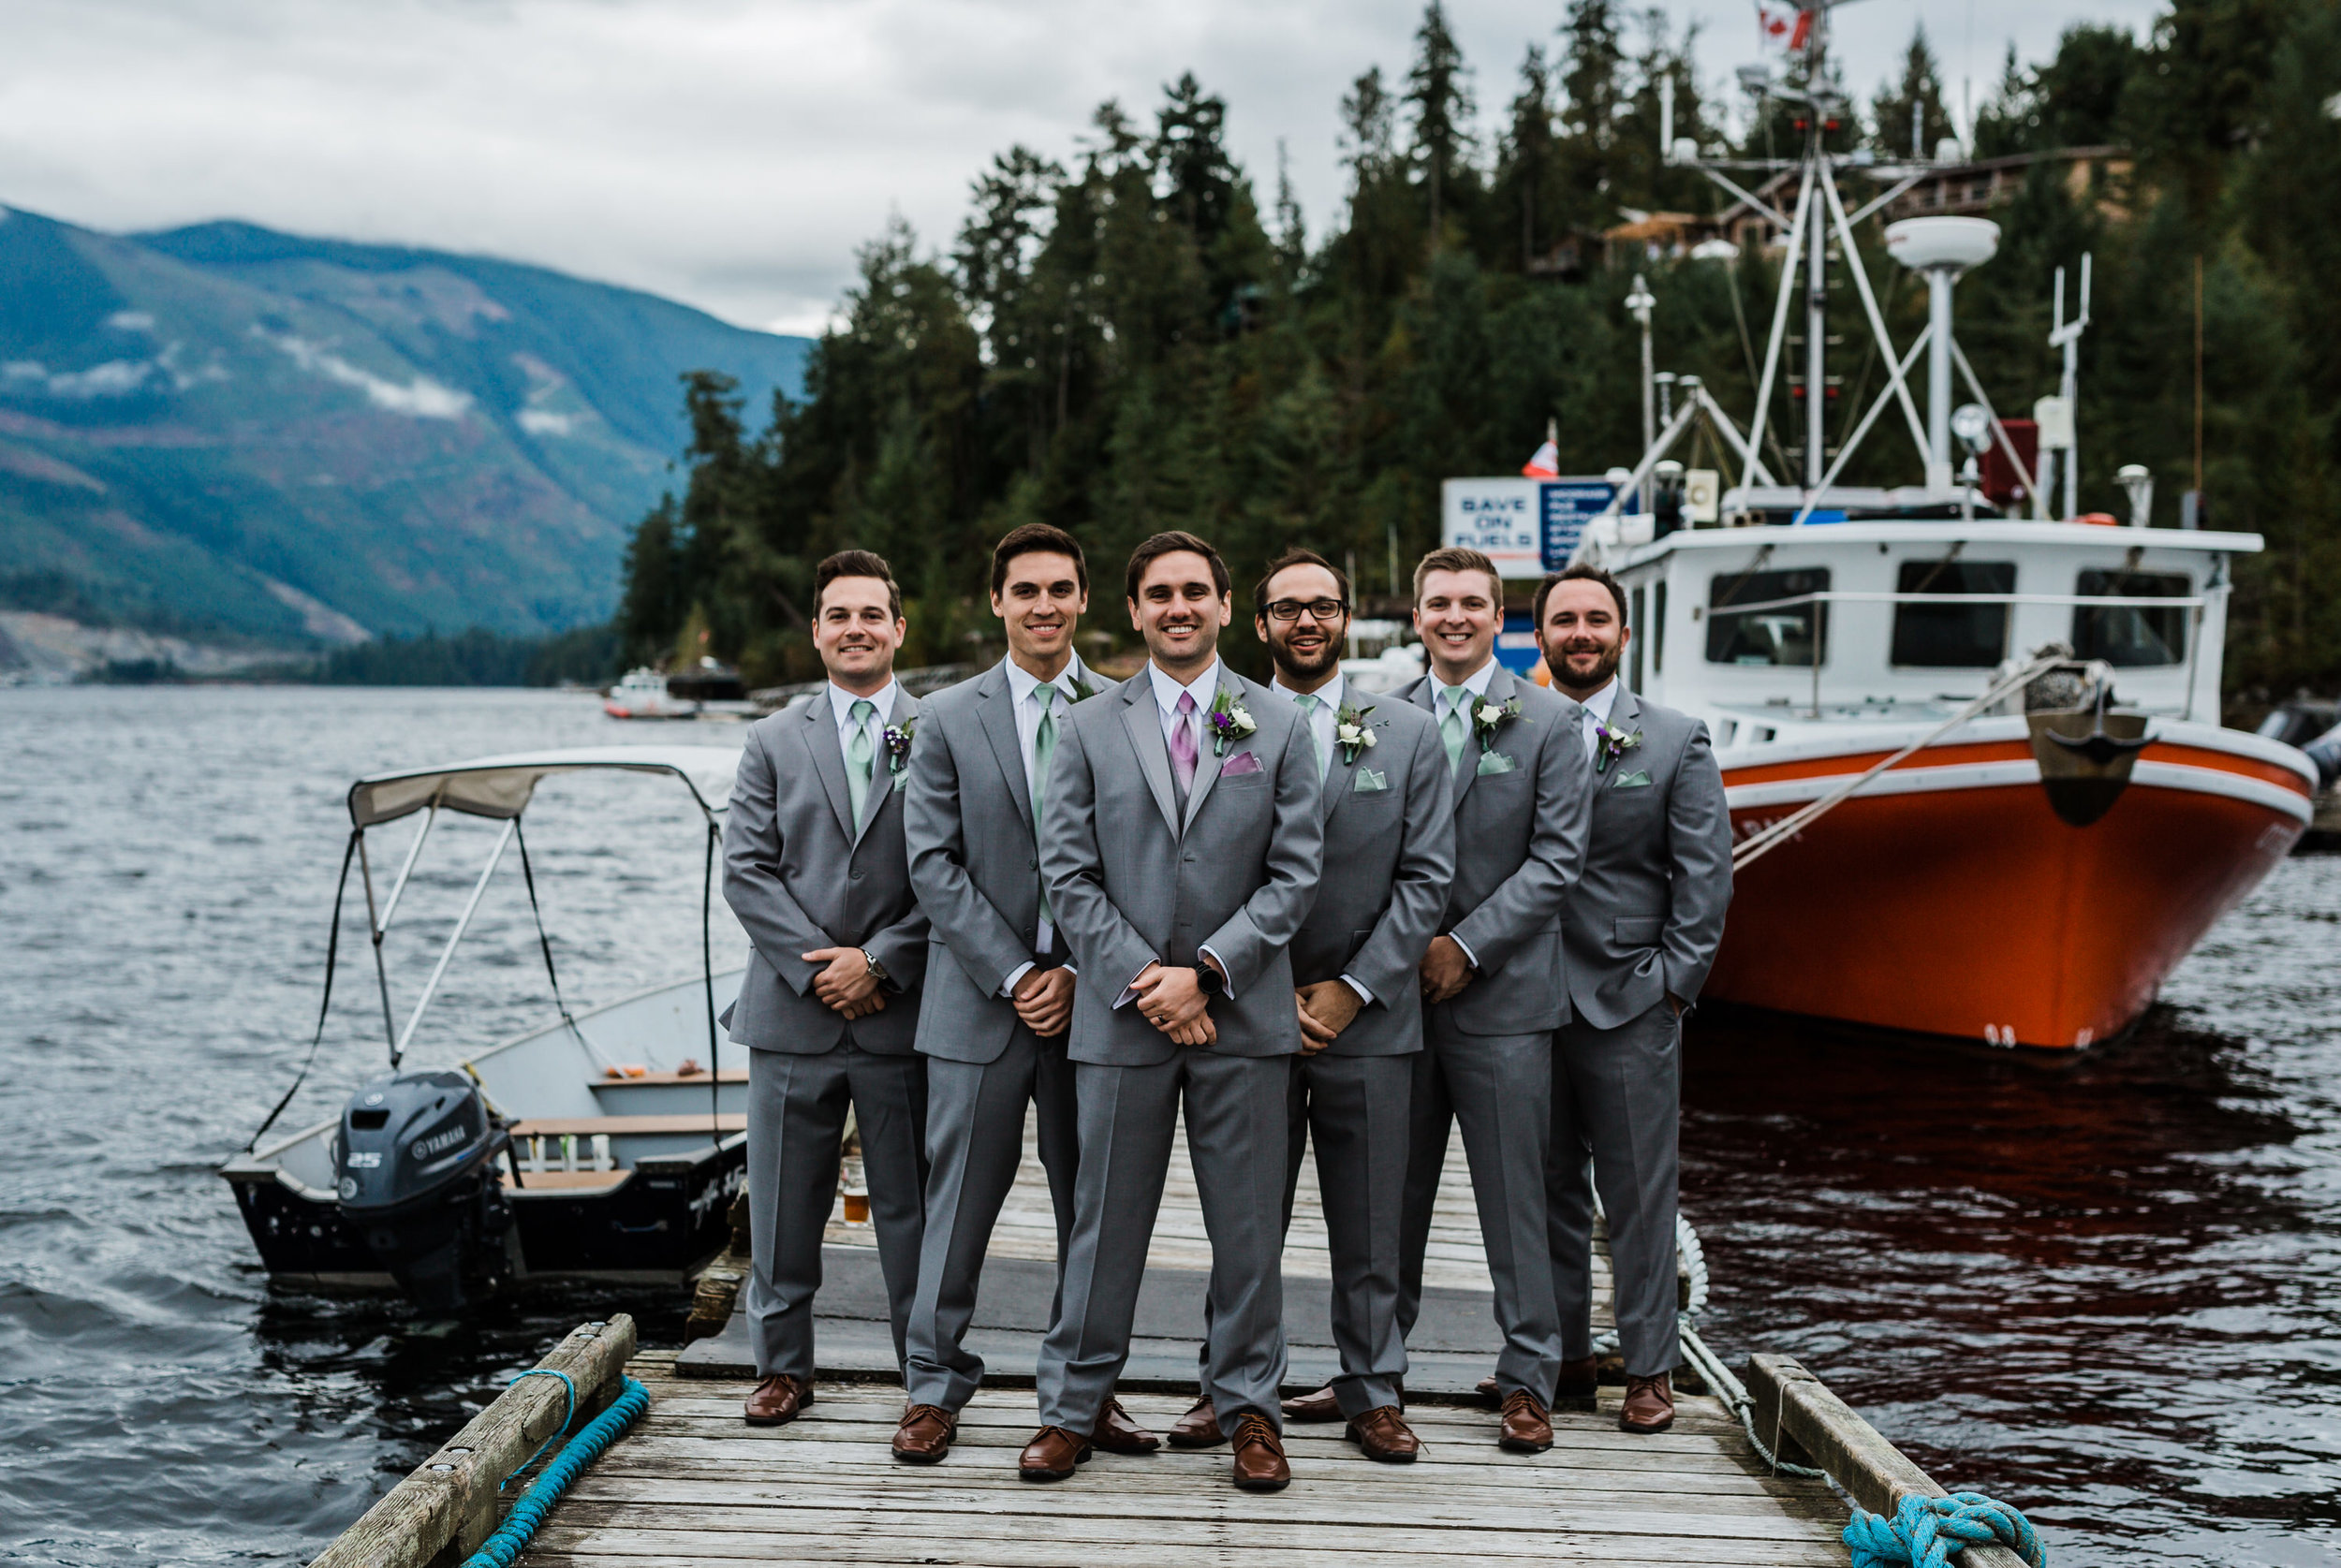 West Coast Wilderness Lodge Wedding Photos - Vancouver Wedding Photographer & Videographer - Sunshine Coast Wedding Photos - Sunshine Coast Wedding Photographer - Jennifer Picard Photography - IMG_6087.jpg